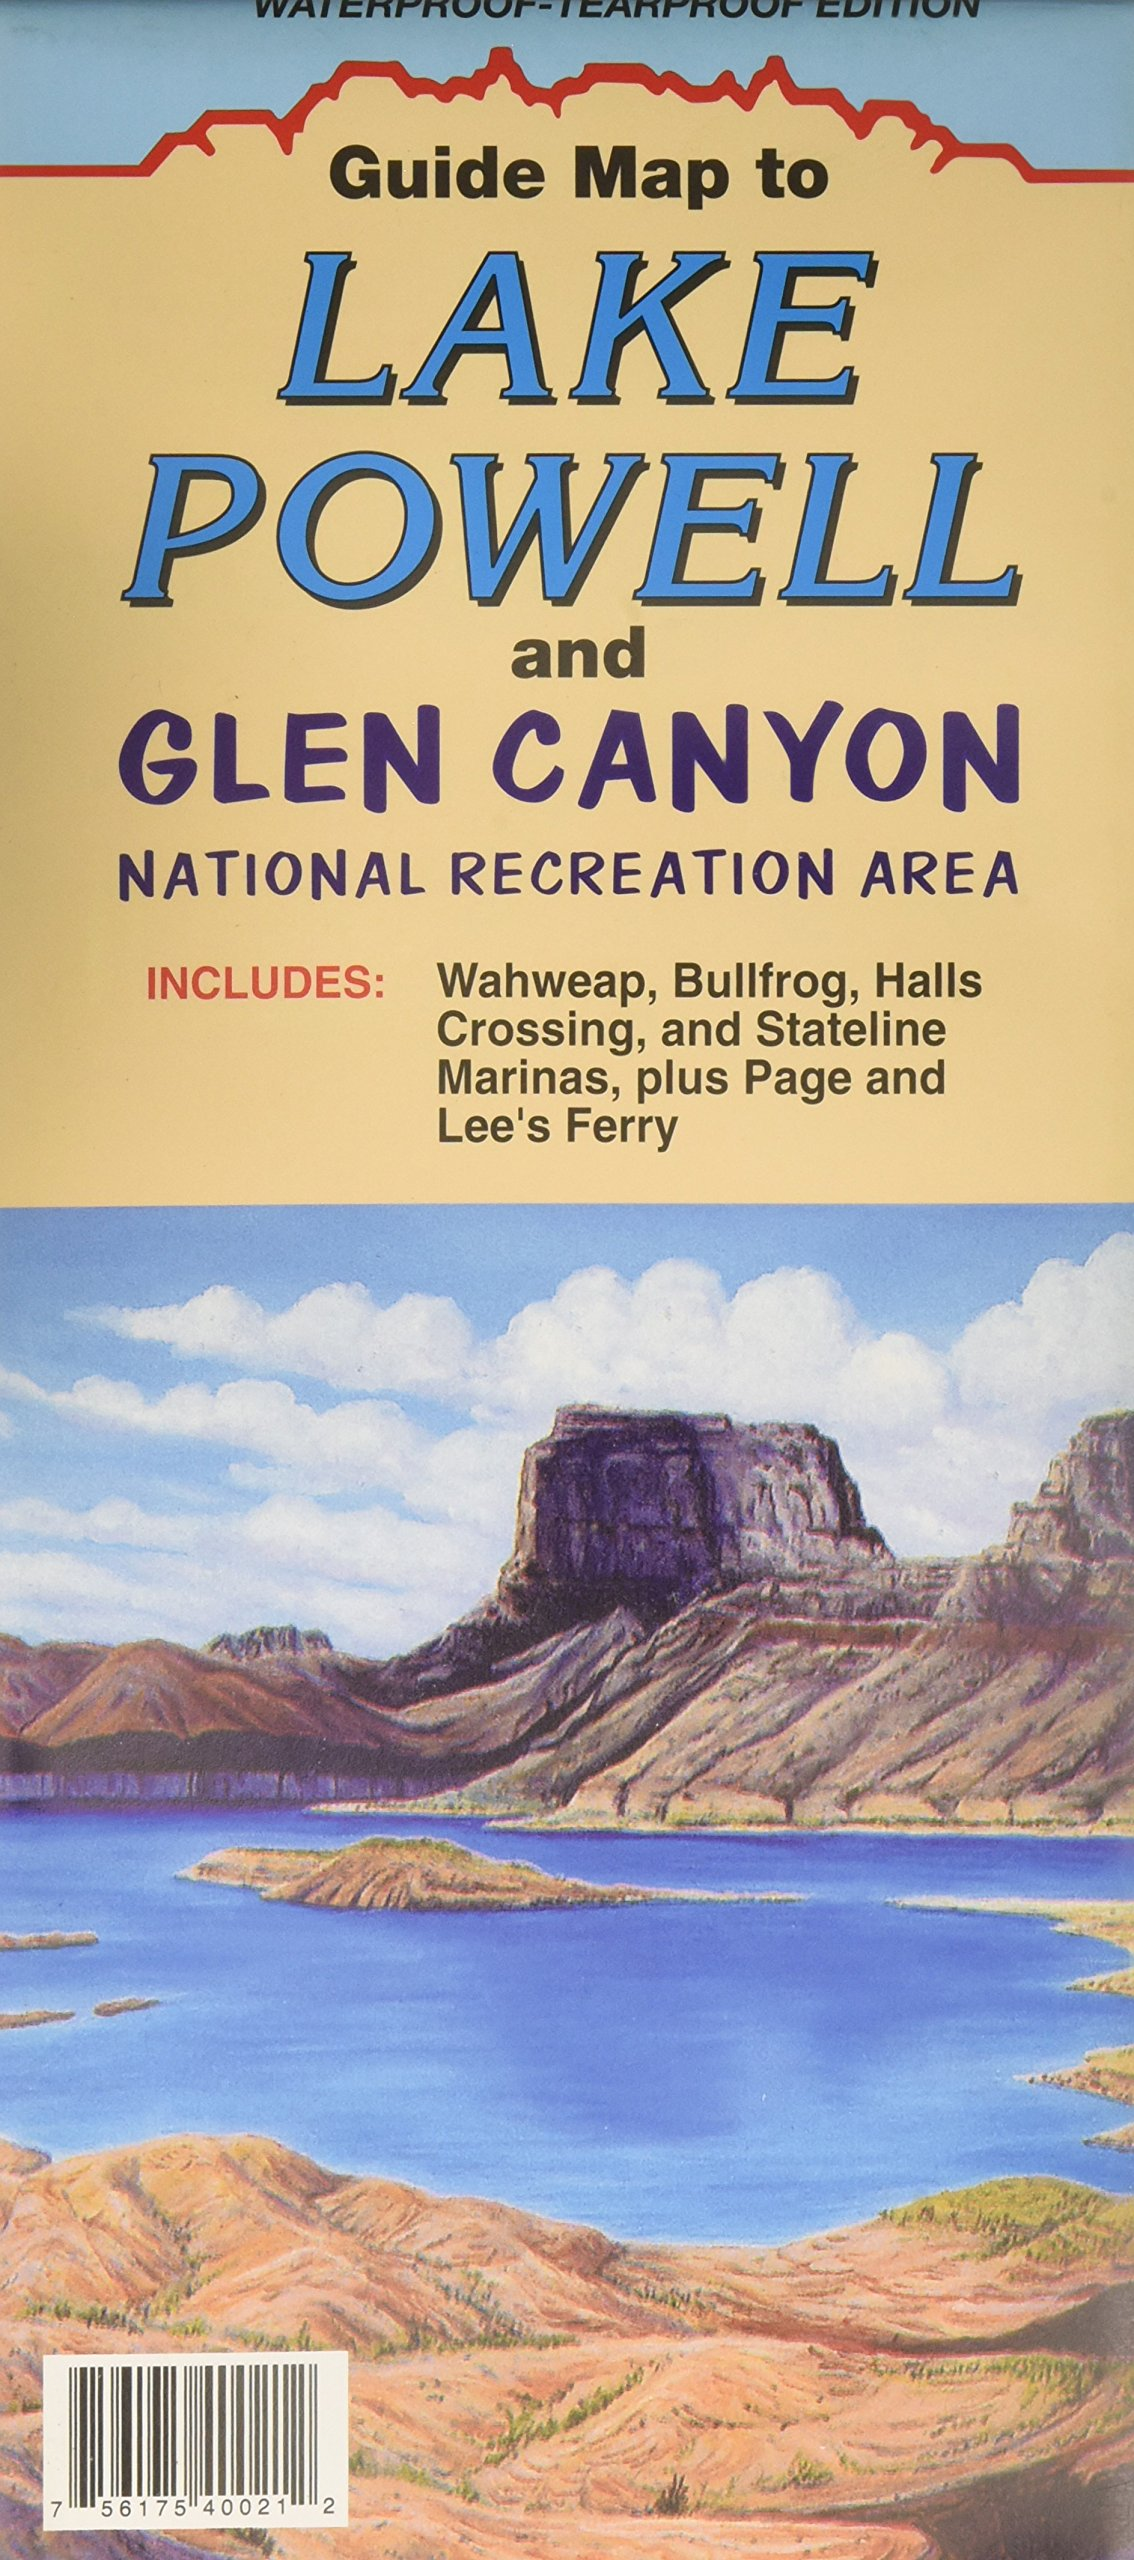 Guide Map to Lake Powell and Glen Canyon : Waterproof-Tearproof ...